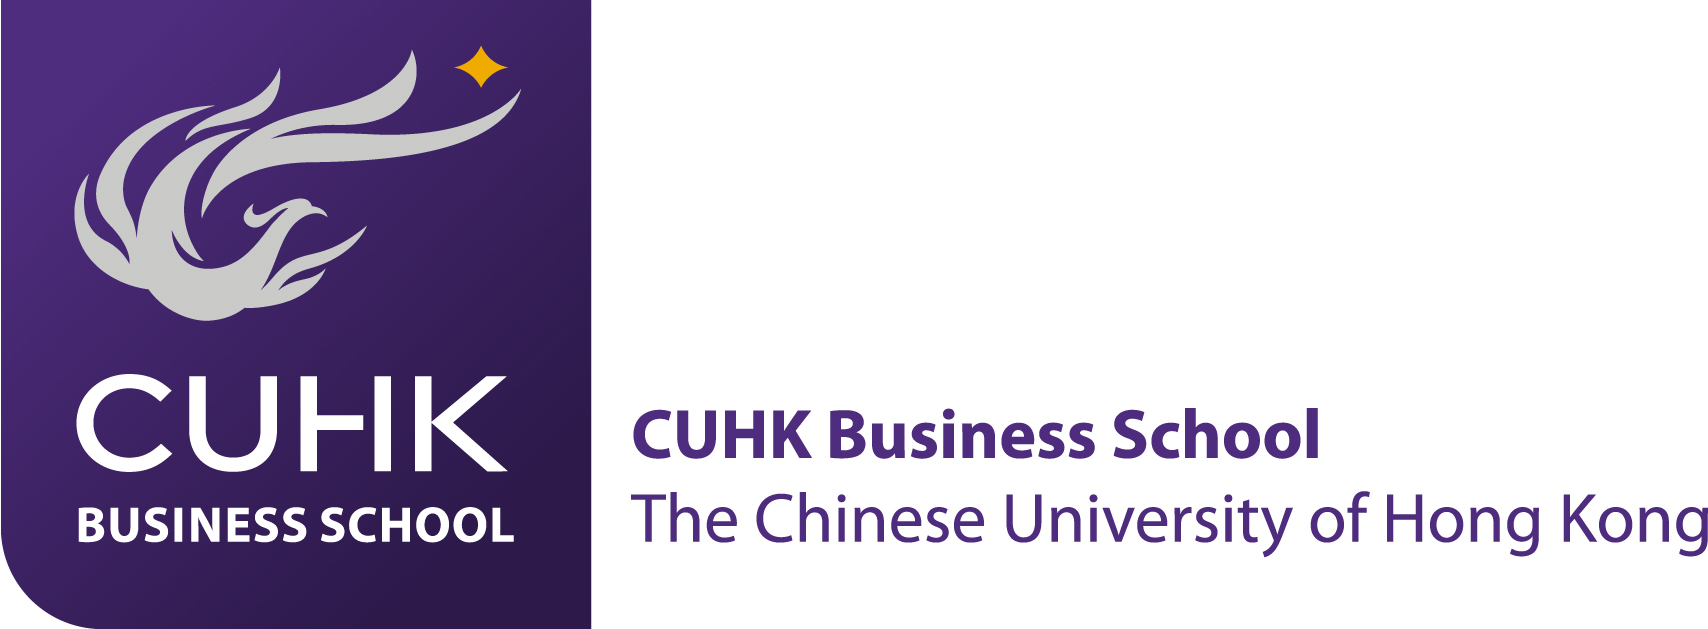 3339_CUHK_Extended_Preferred Logo_Eng_RGB